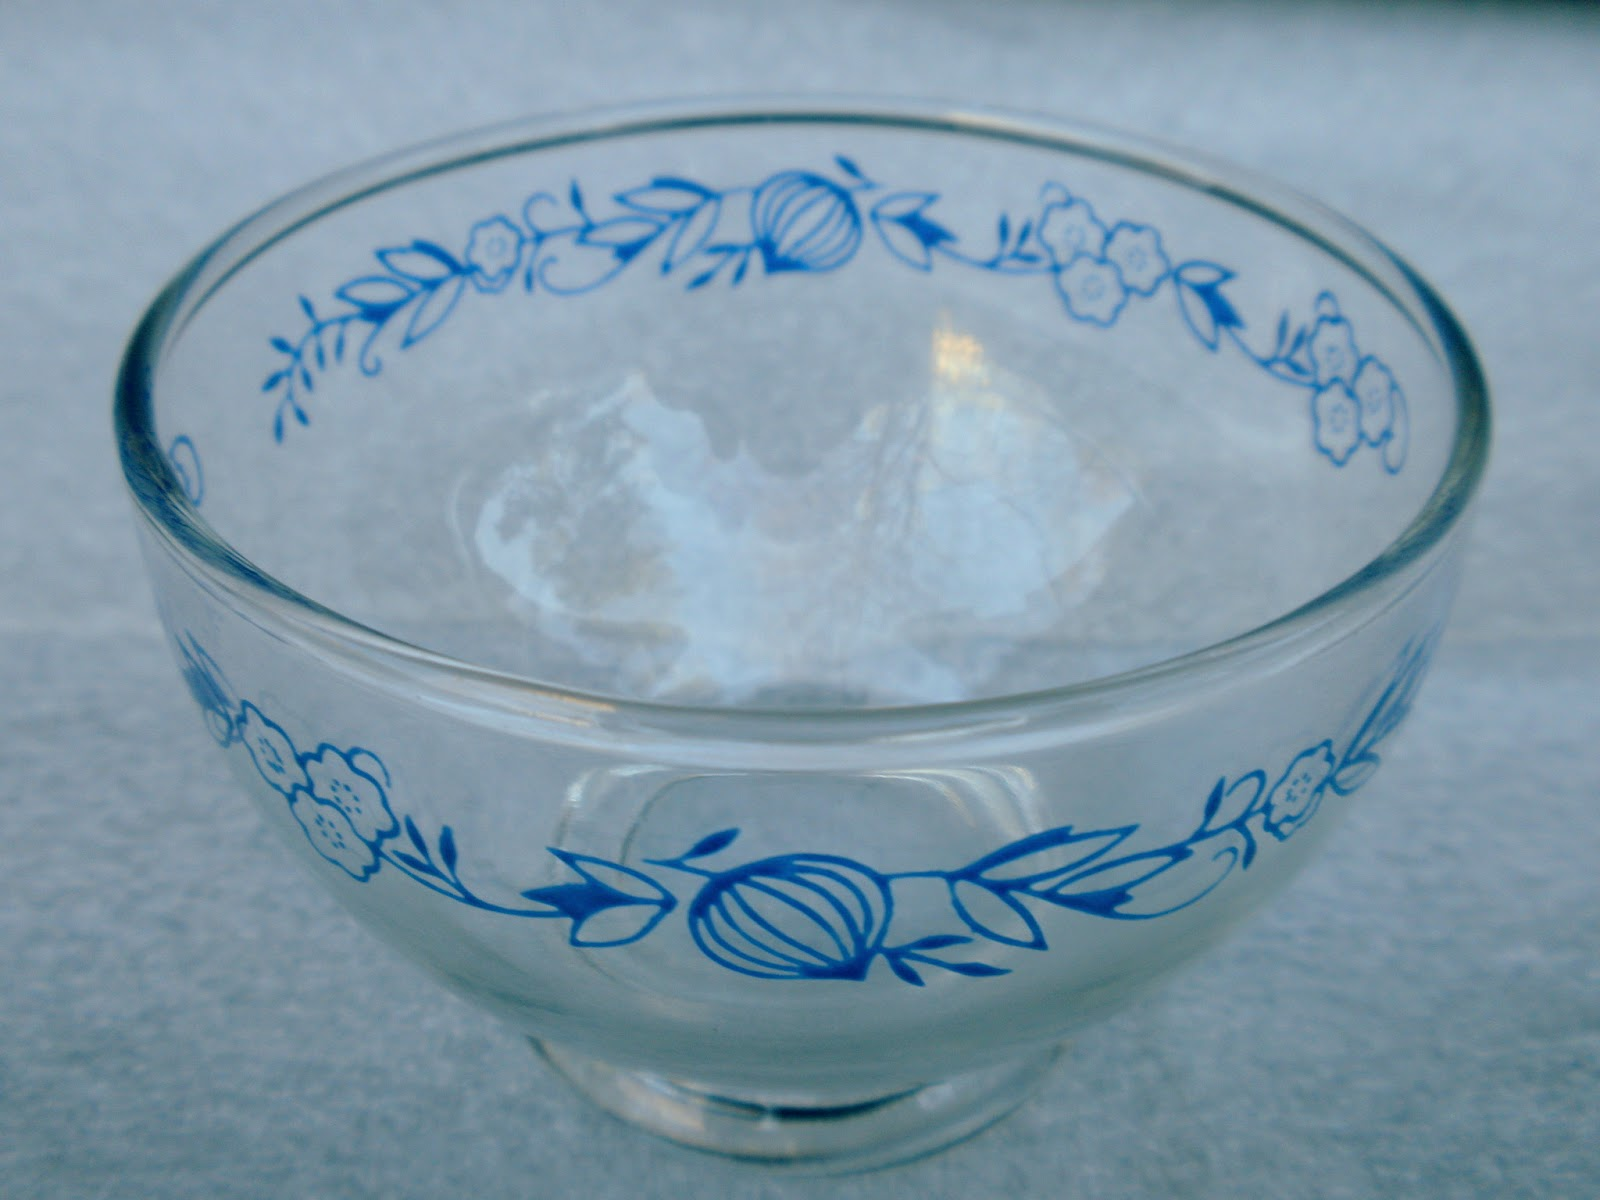 Mandicrafts news views teddy bears collectibles for Most valuable depression glass patterns